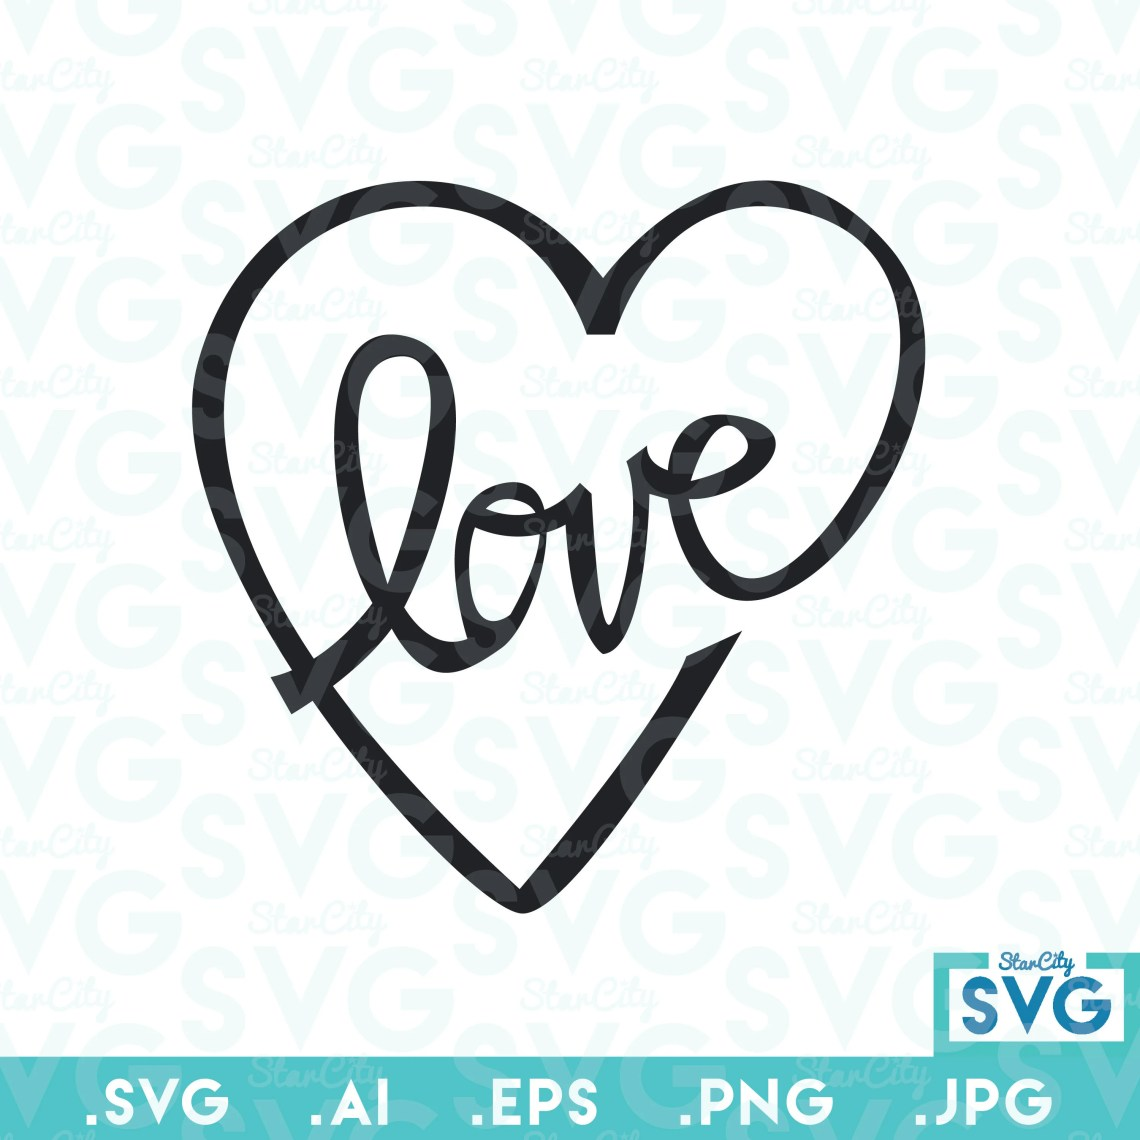 Download Love Vector file Vector cutting file SVG cutting file Love